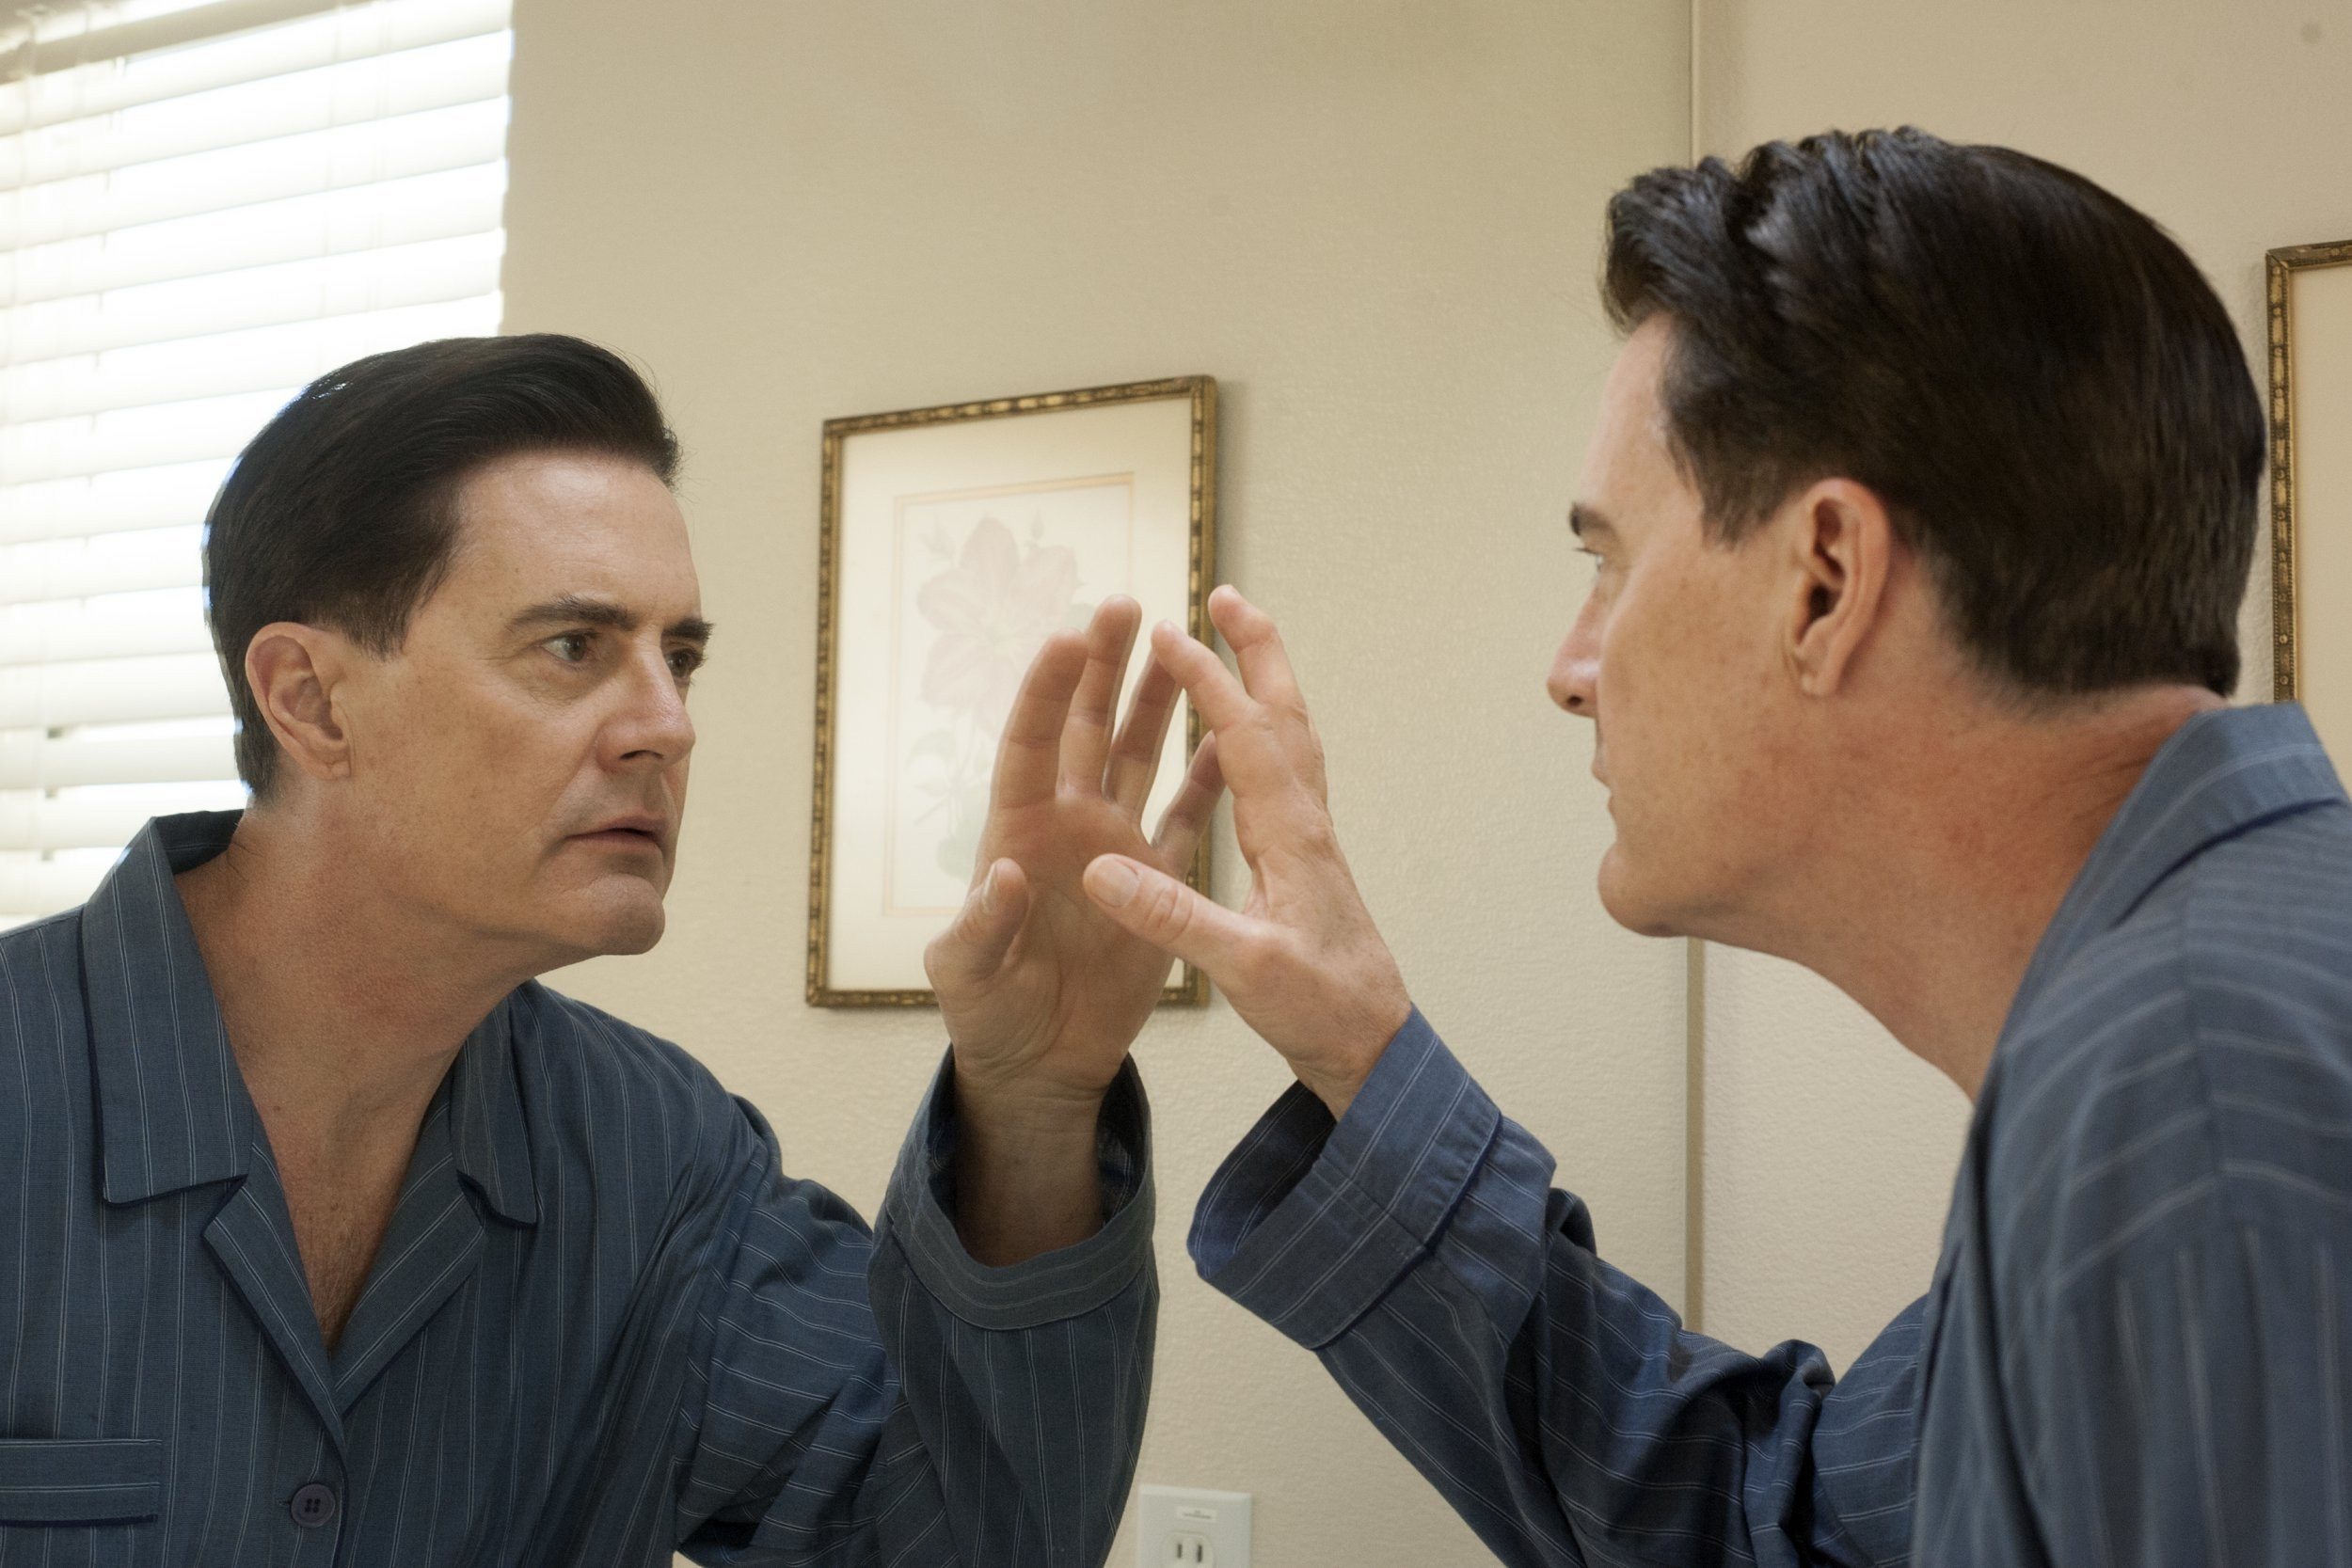 Kyle MacLachlan hosting Twin Peaks coronavirus self-isolation viewing party for 30th anniversary – because why not?